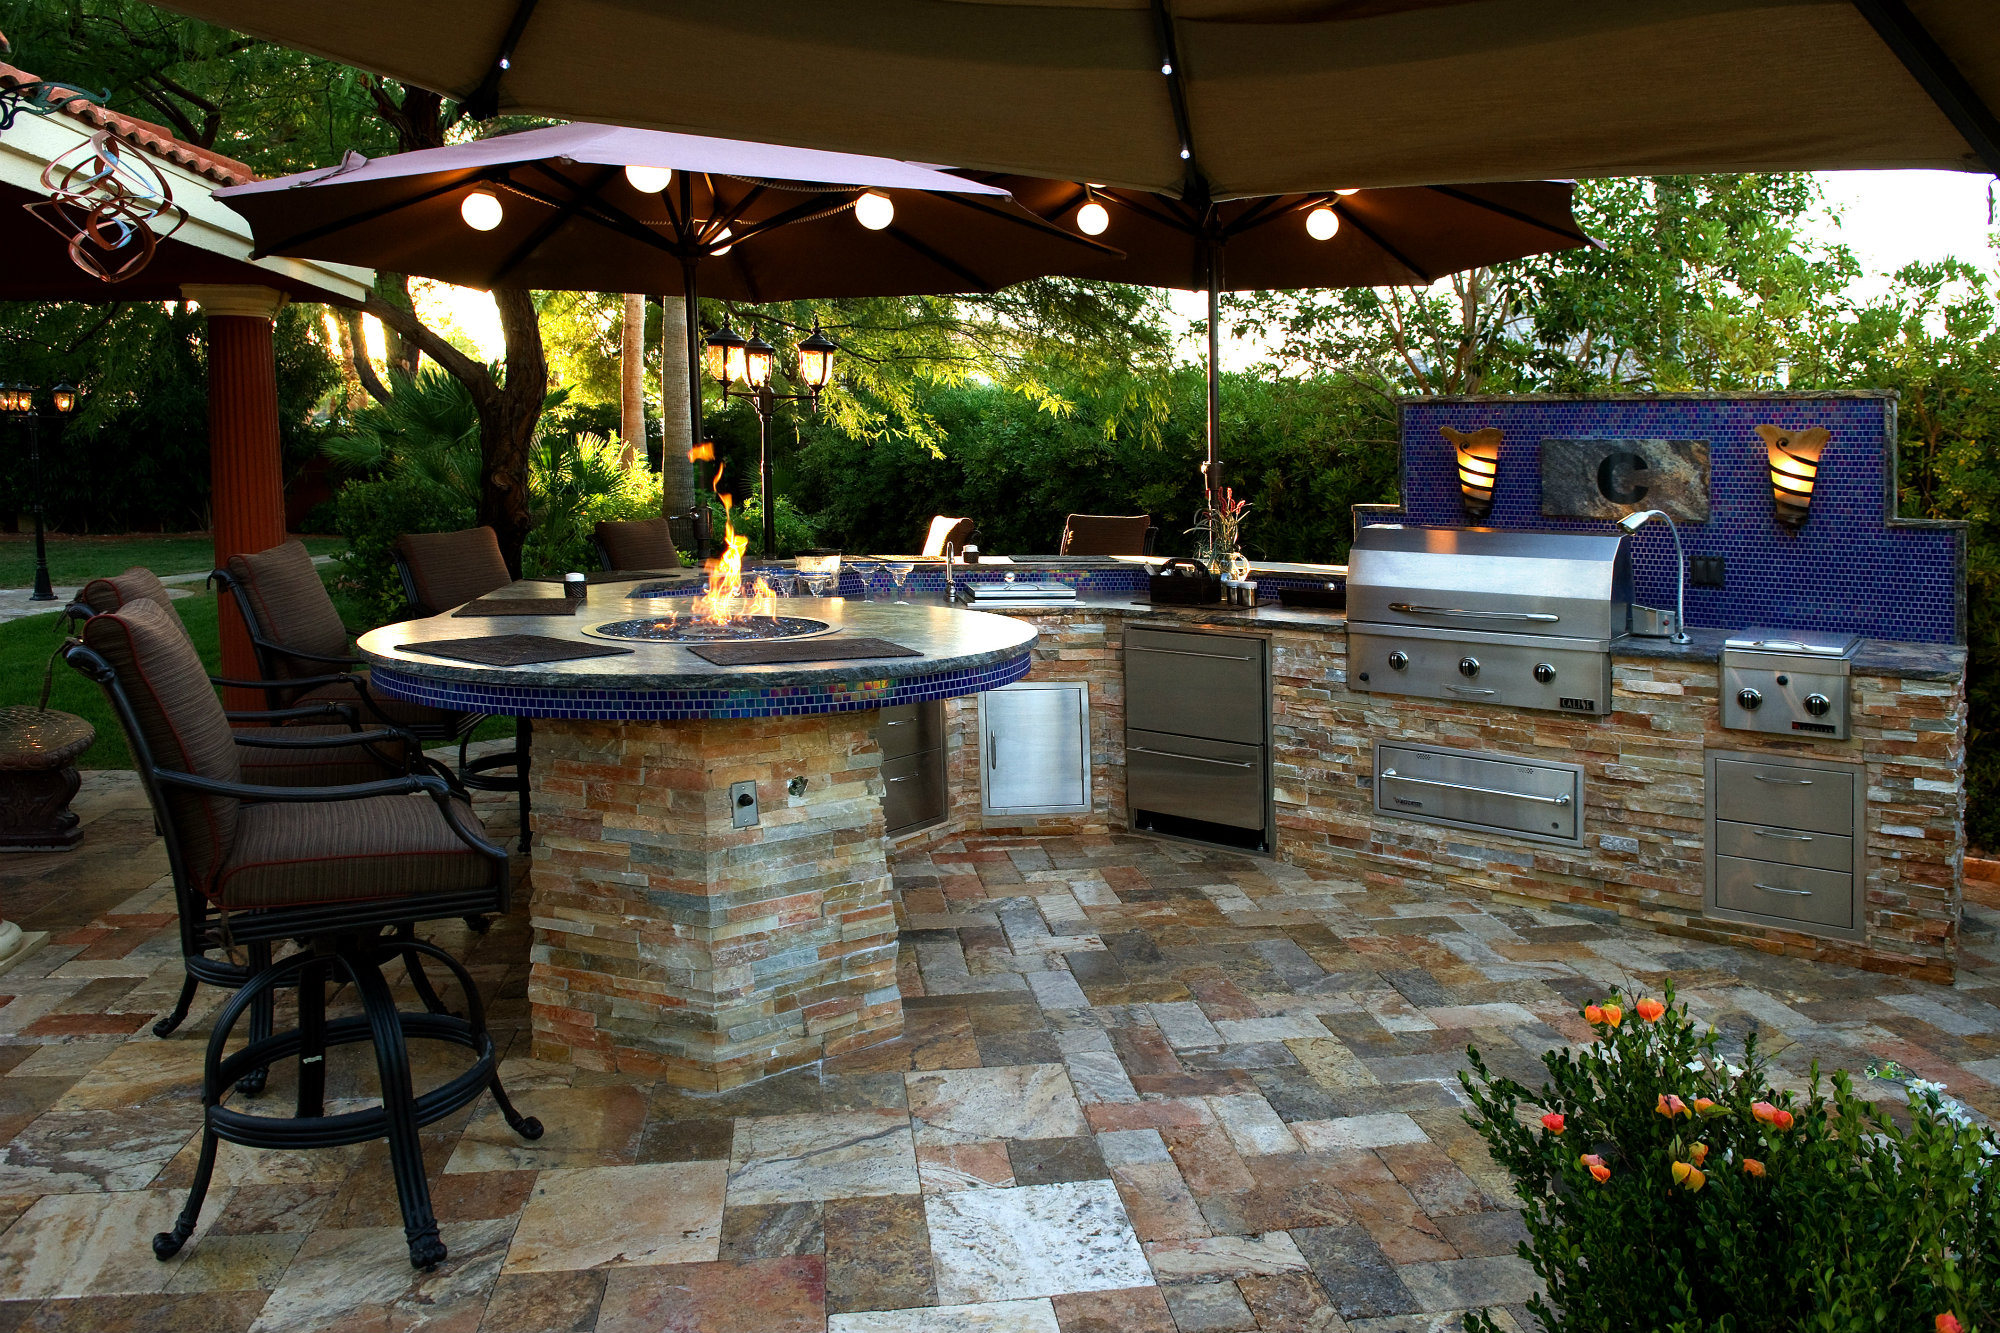 outdoorliving-imaginebackyardliving Outdoor Decorating Ideas Pool Backyard on ocean decorating ideas, backyard pool house ideas, backyard pool deck ideas, backyard pool lighting ideas, small backyard pool ideas, backyard pool landscaping ideas, backyard pool construction, barbecue decorating ideas, backyard pool fireplaces, birdhouse decorating ideas, lake decorating ideas, backyard pool wedding ideas, backyard pool fencing ideas, backyard pool design, backyard pool storage ideas, backyard pool furniture ideas, backyard pool garden, backyard pool diy, river decorating ideas, bird bath decorating ideas,